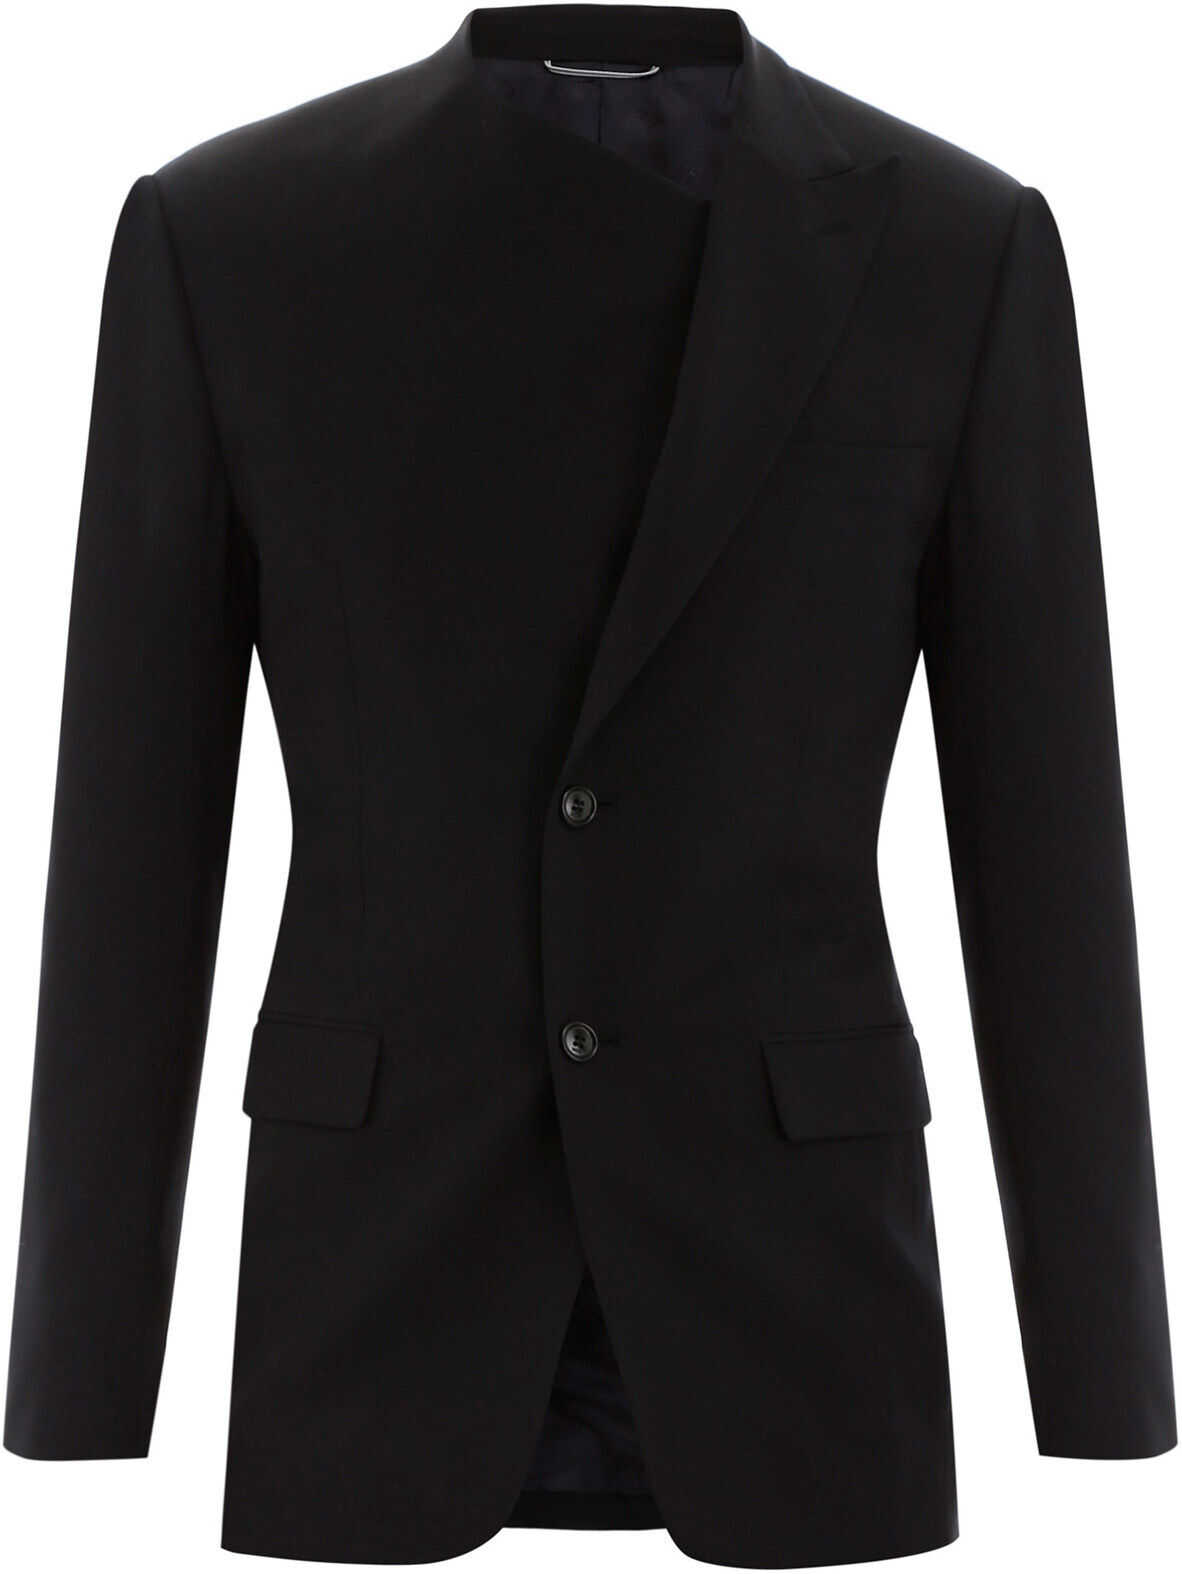 Dior Asymmetrical Blazer NAVY BLUE imagine